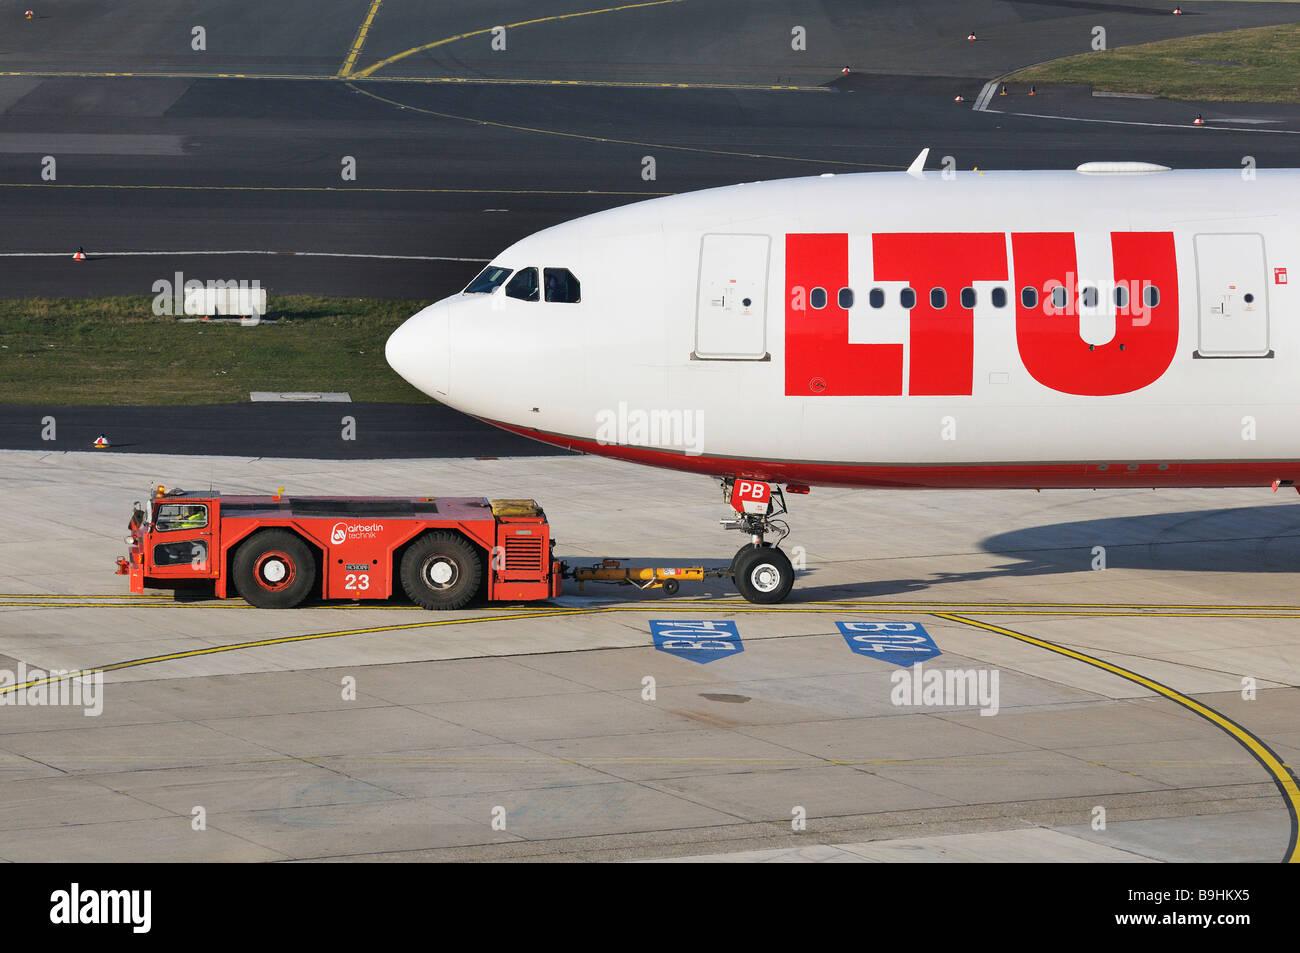 LTU commercial aircraft in the manoeuvring area with marshalling yard vehicle, Duesseldorf International Airport, - Stock Image